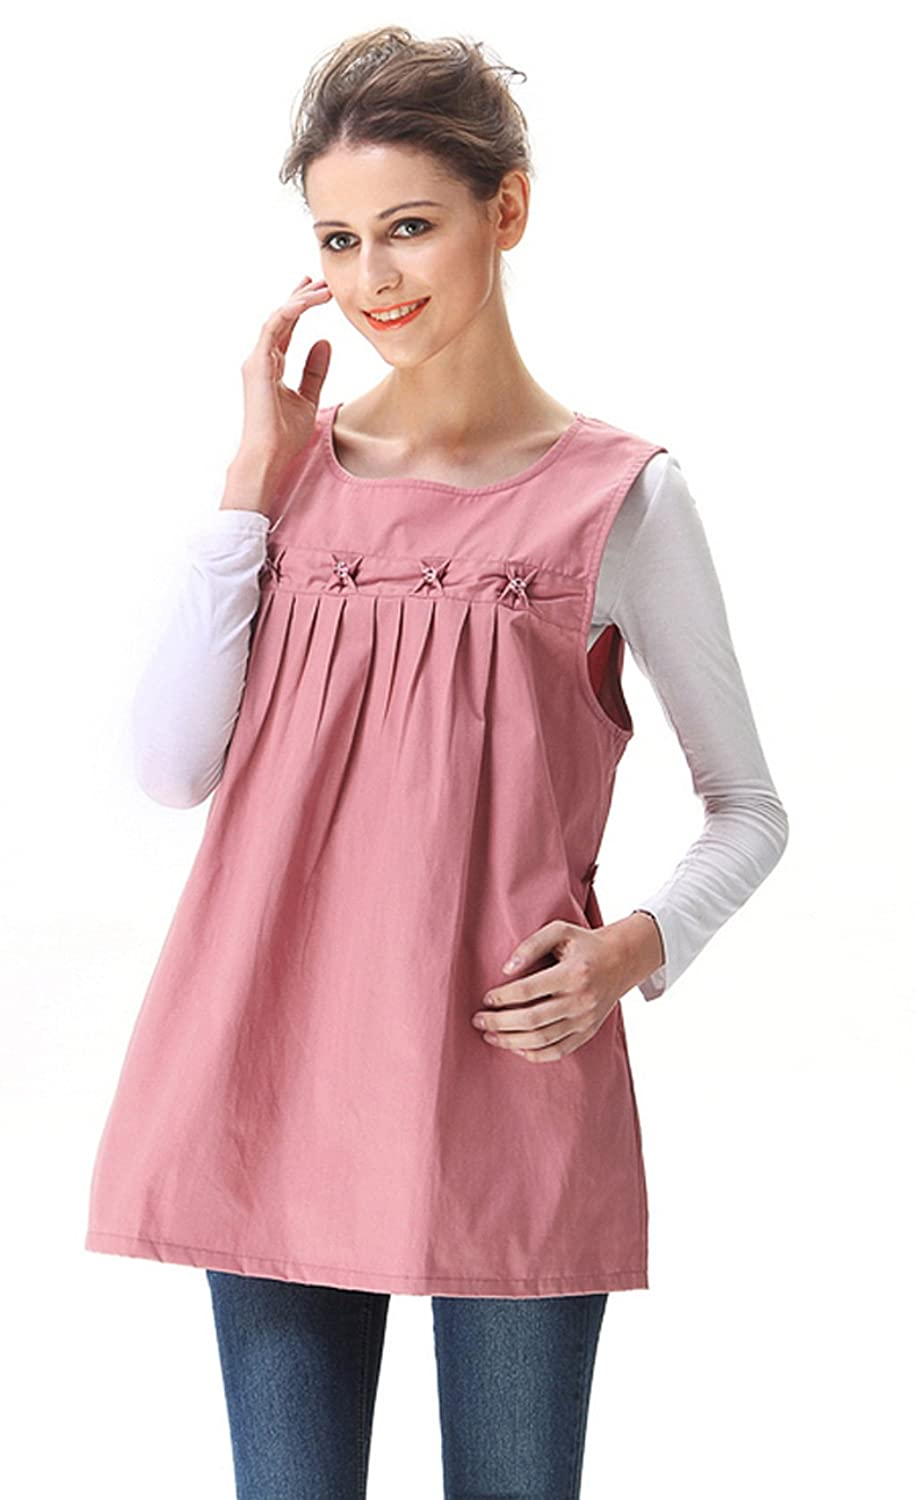 Maternity dresses top with rf radiation shield pink clothes maternity dresses top with rf radiation shield pink clothes 8900610 at amazon womens clothing store fashion maternity tank top and cami shirts ombrellifo Gallery